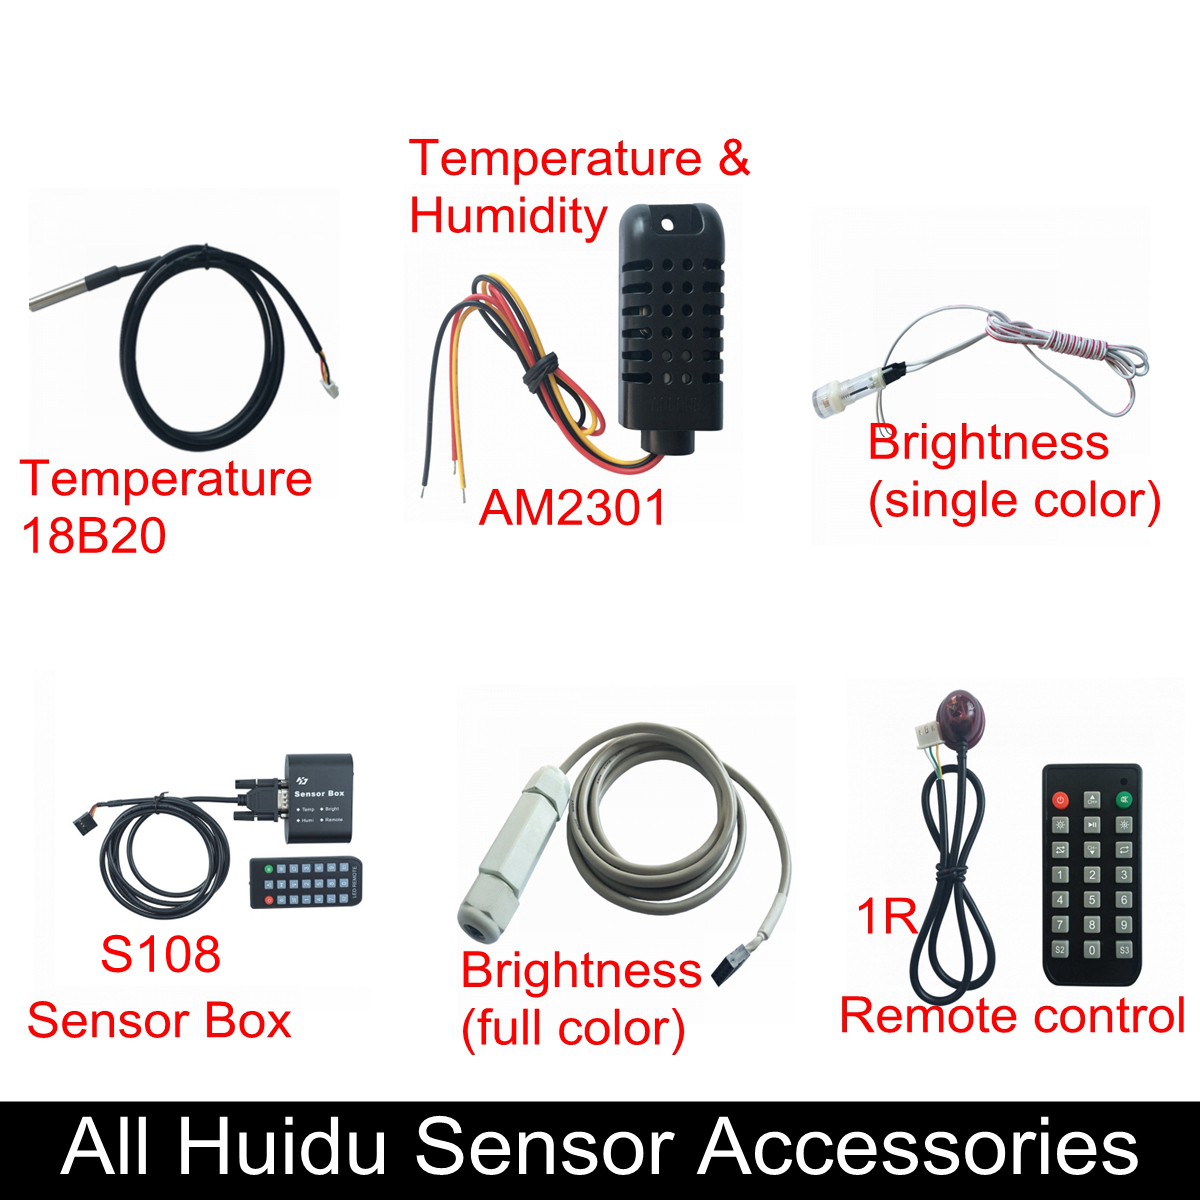 Huidu Sensors Temperature 18B20,Temperature & Humidity Sensor AM2301,Single/RGB Brightness Sensor, Sensor Box,1R Remote